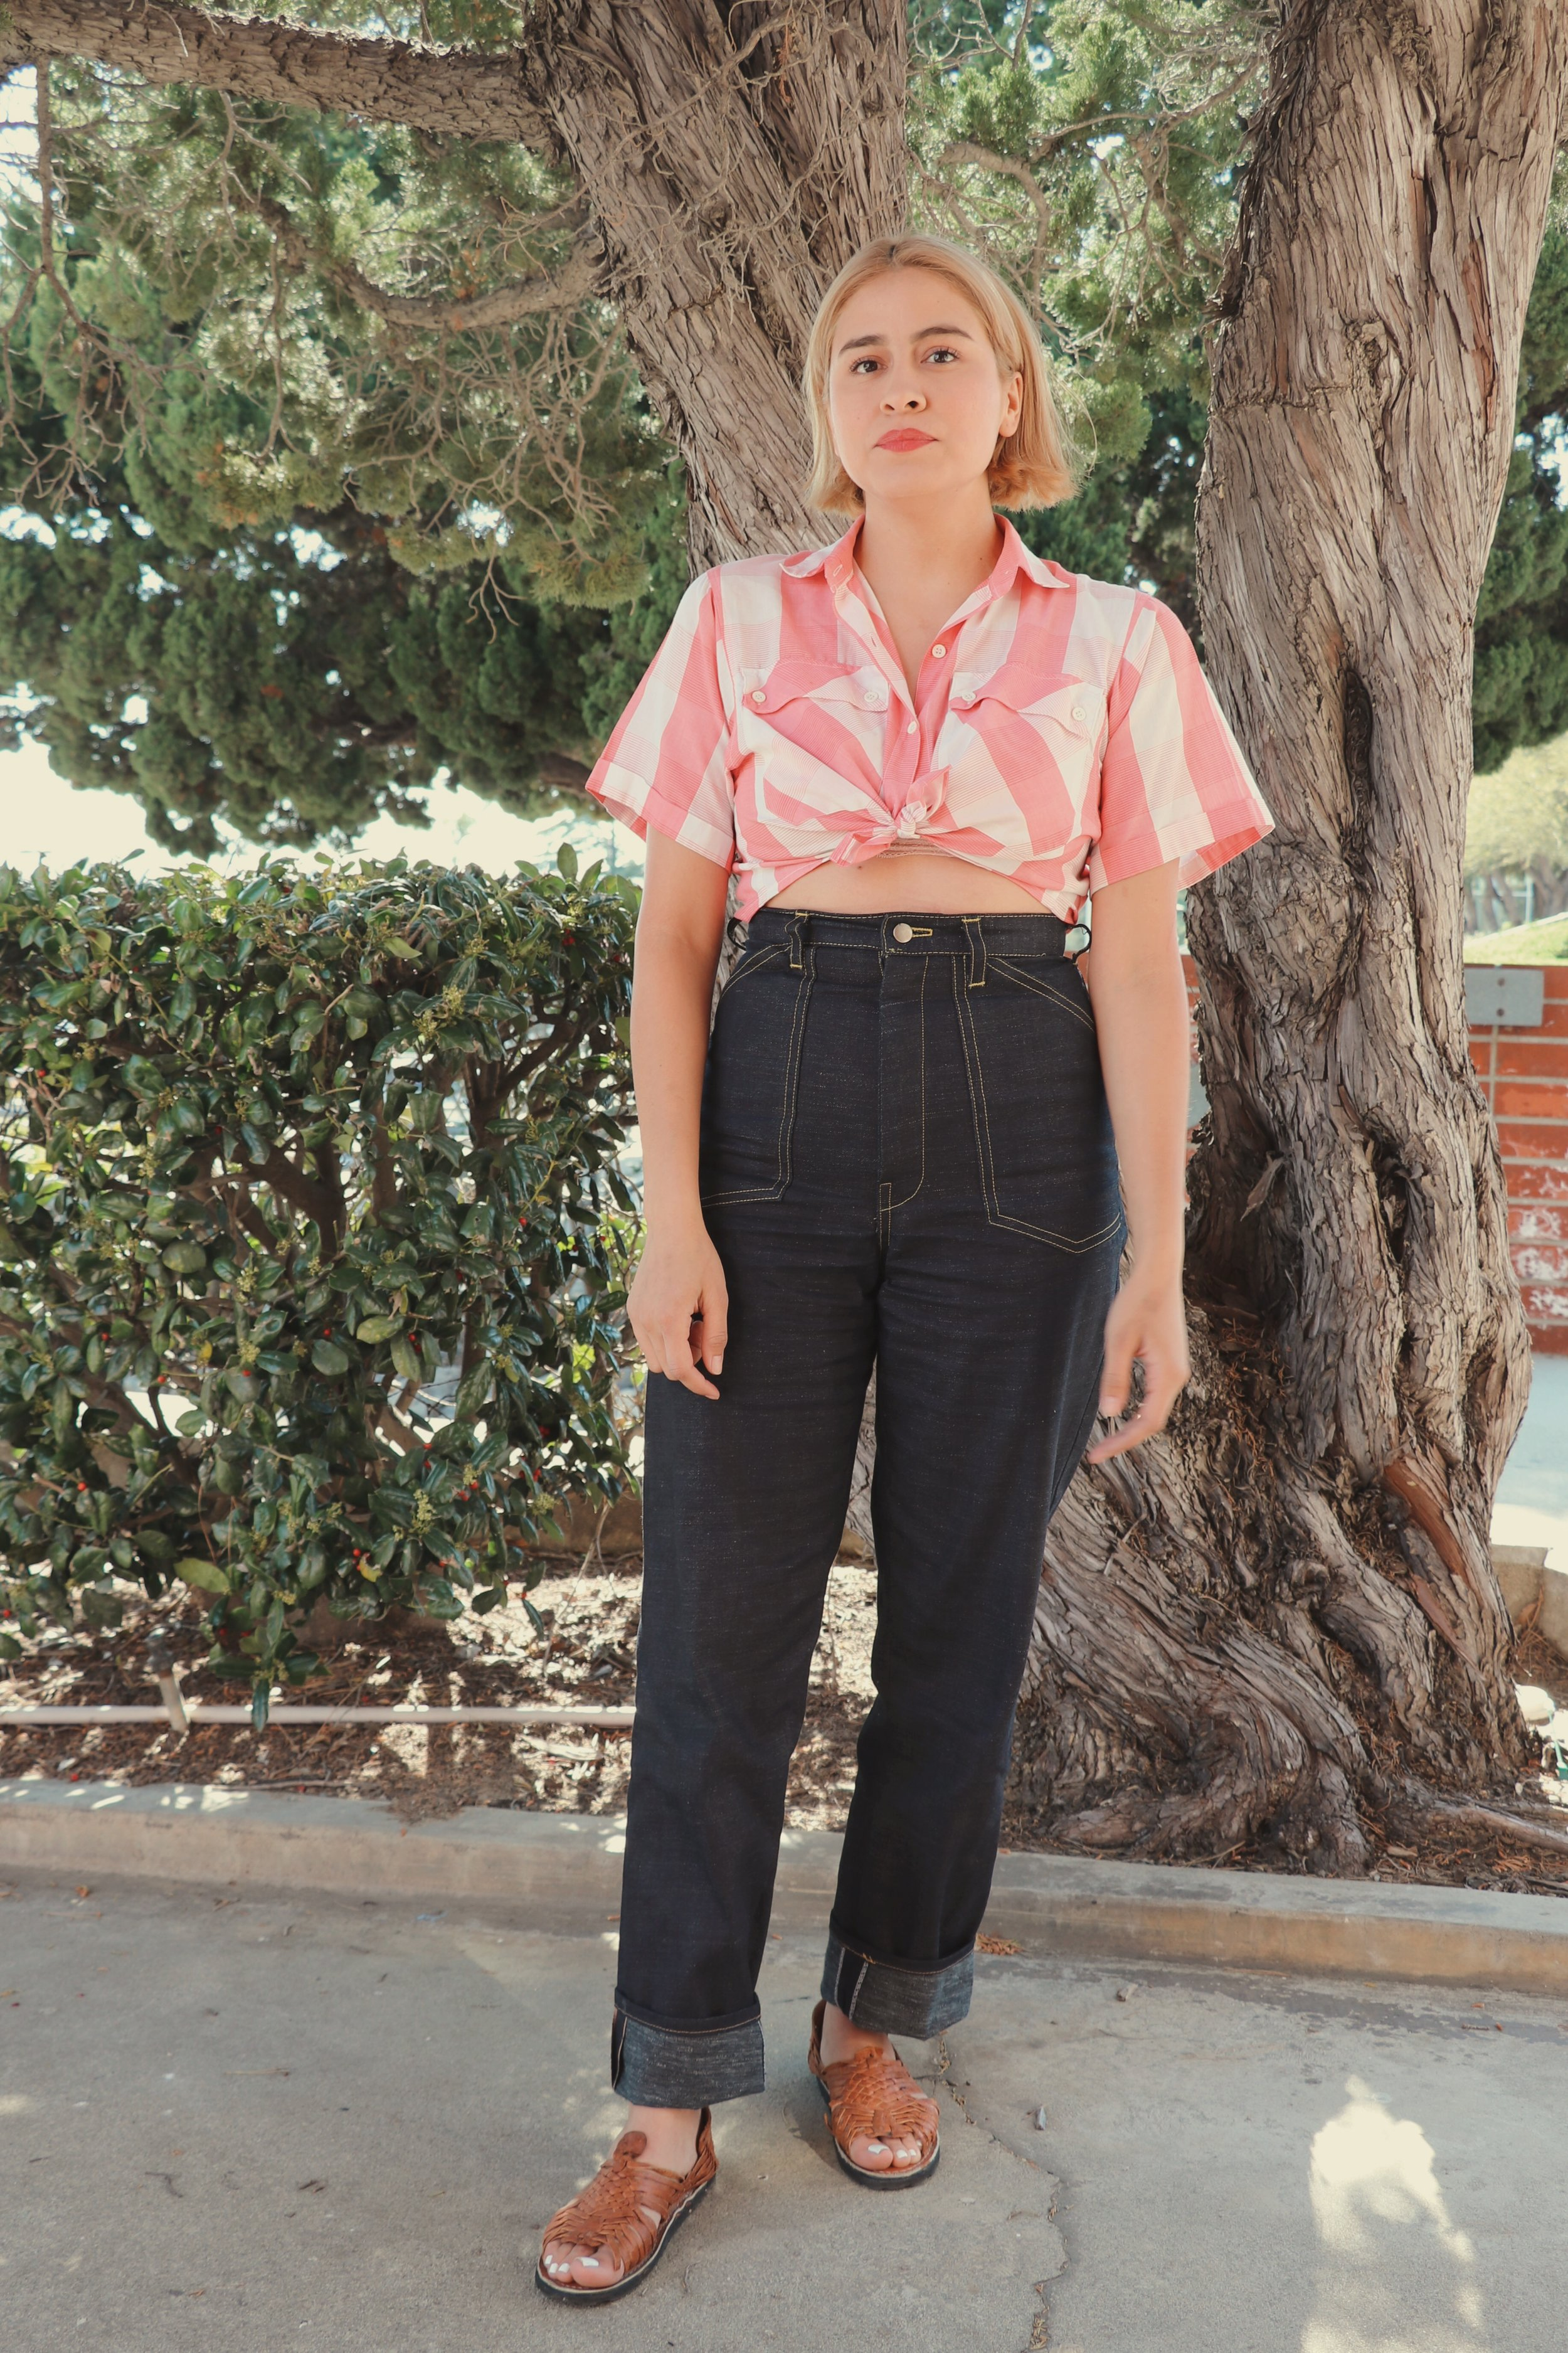 Chaffey student Michelle Macias pairs high waisted pants with a collared cropped top for a boho indie look.